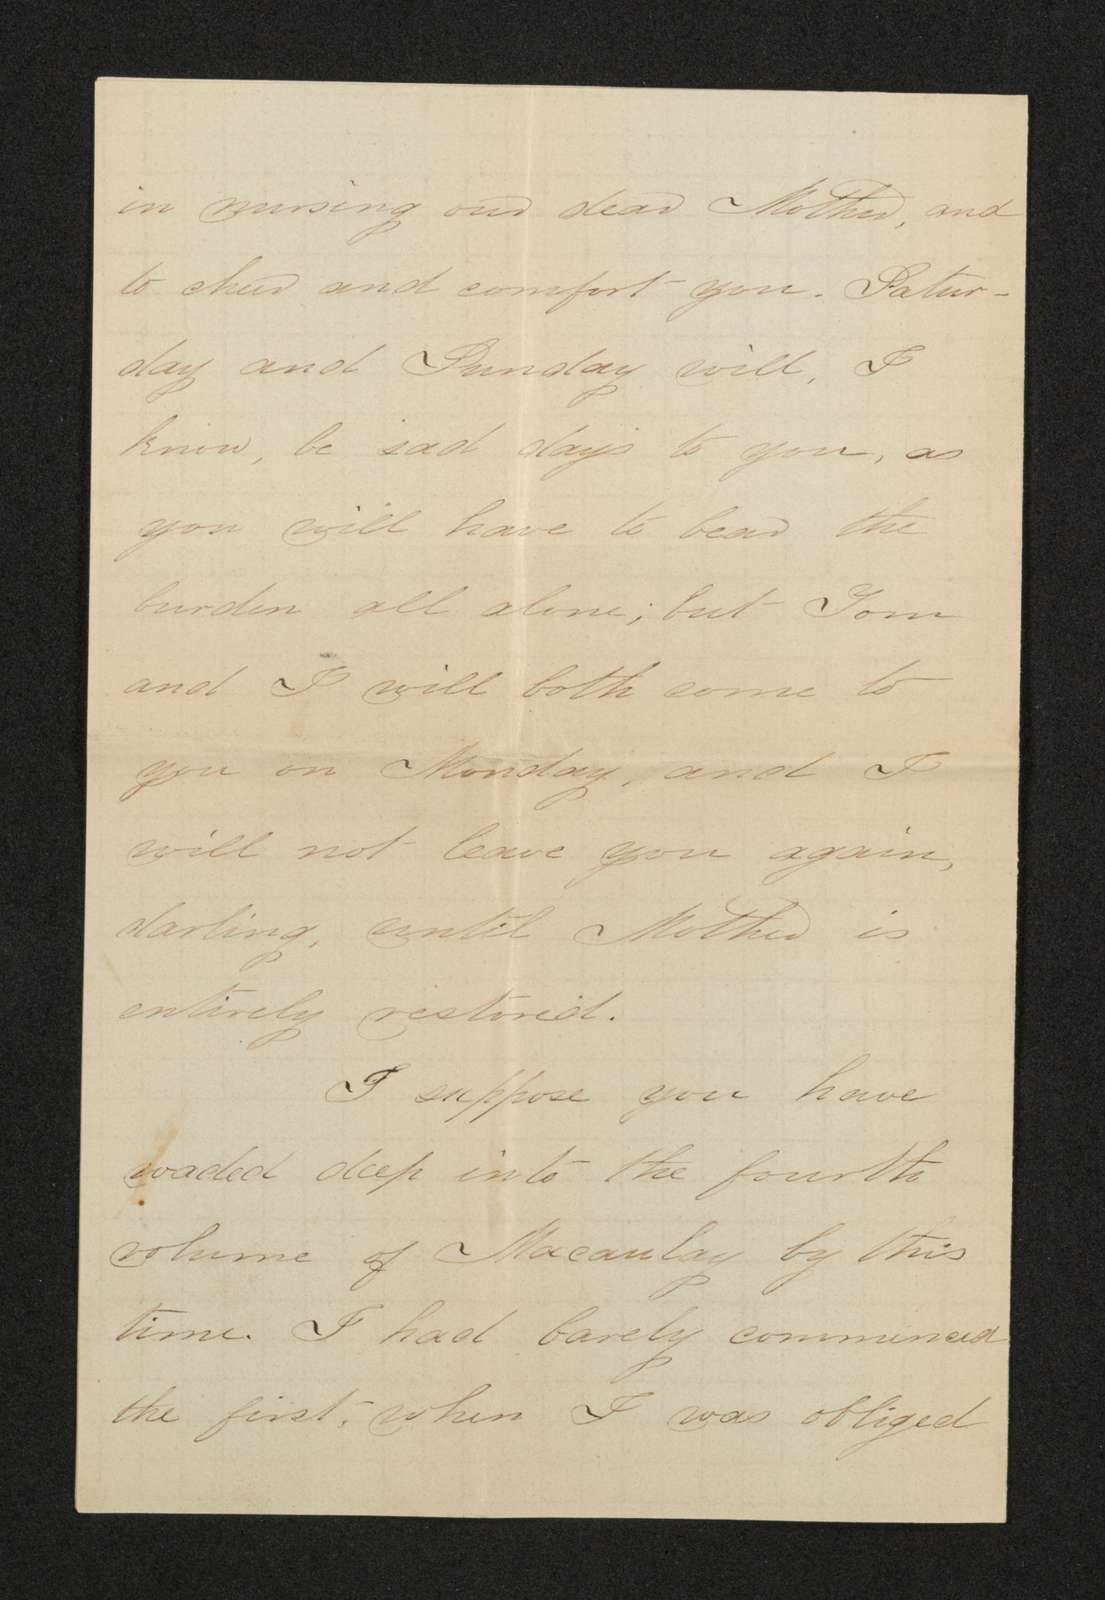 Lewis H. Machen Family Papers: Gresham Family Correspondence, 1834-1925; 1870